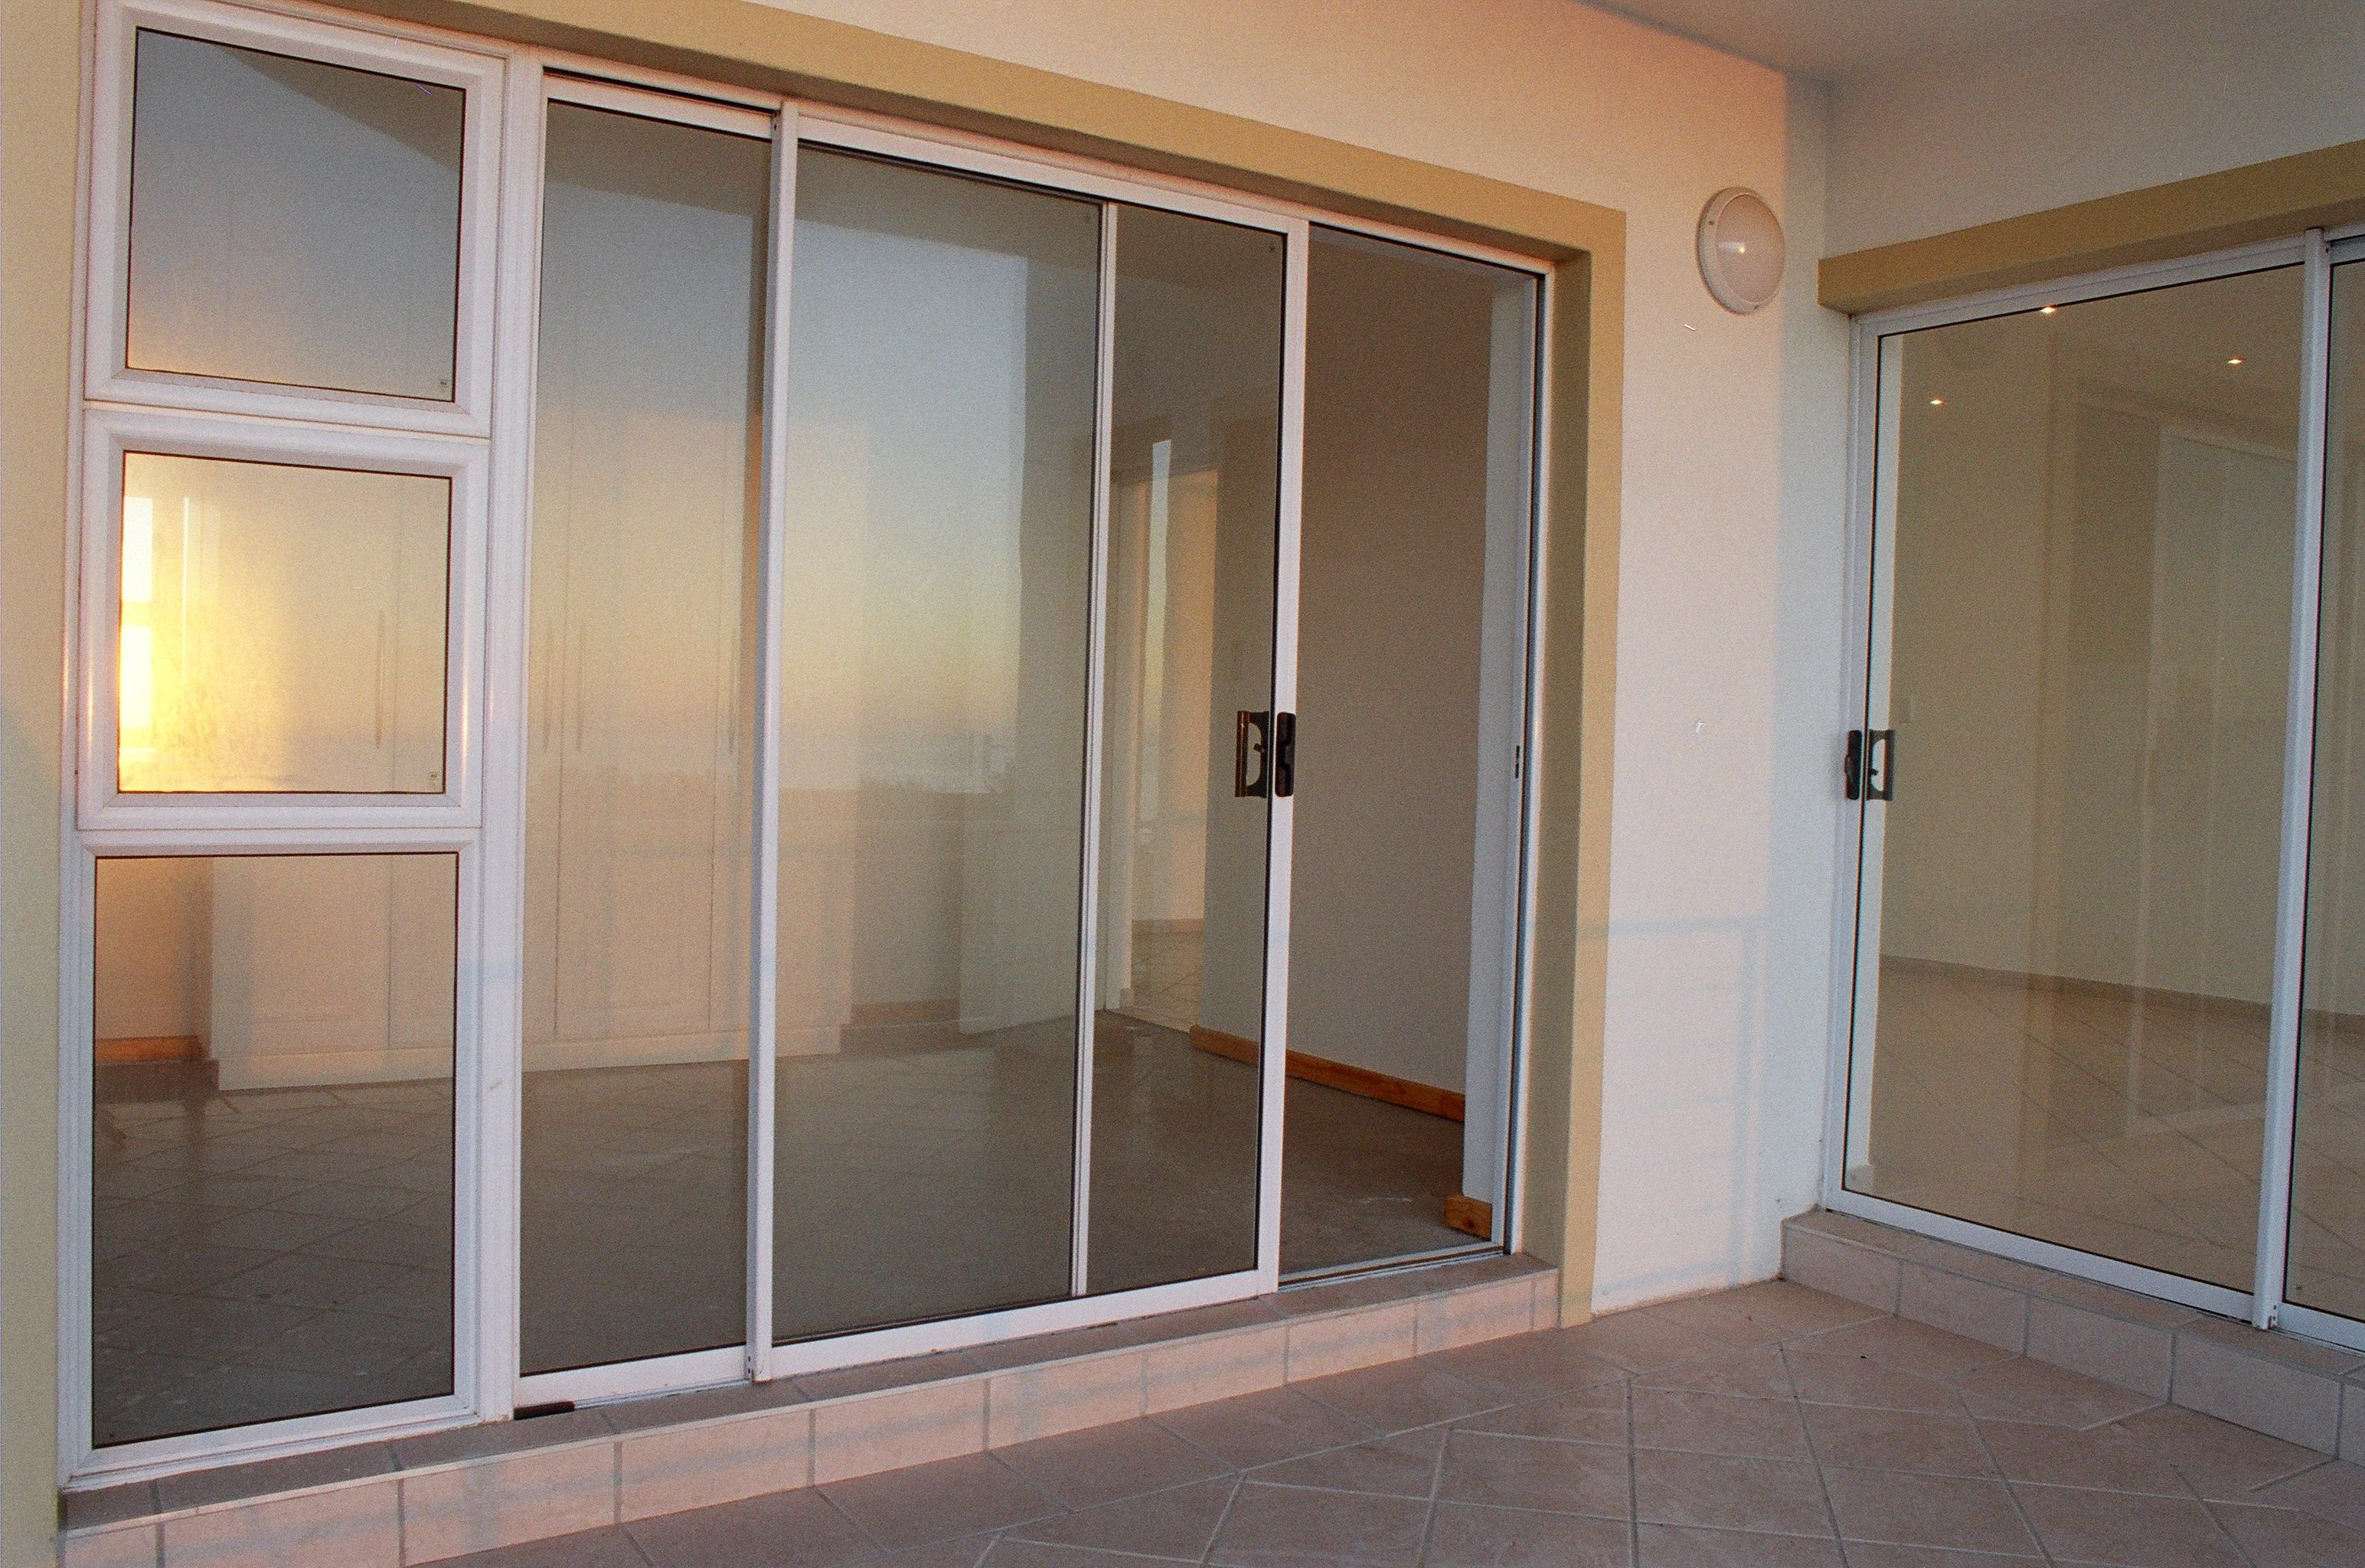 Padiolok Is Fantastic When Fitted On The Patio Door Of A Walk Out Hotel Room Such As Poolside Or Andersen Patio Doors Sliding Patio Doors Door Installation